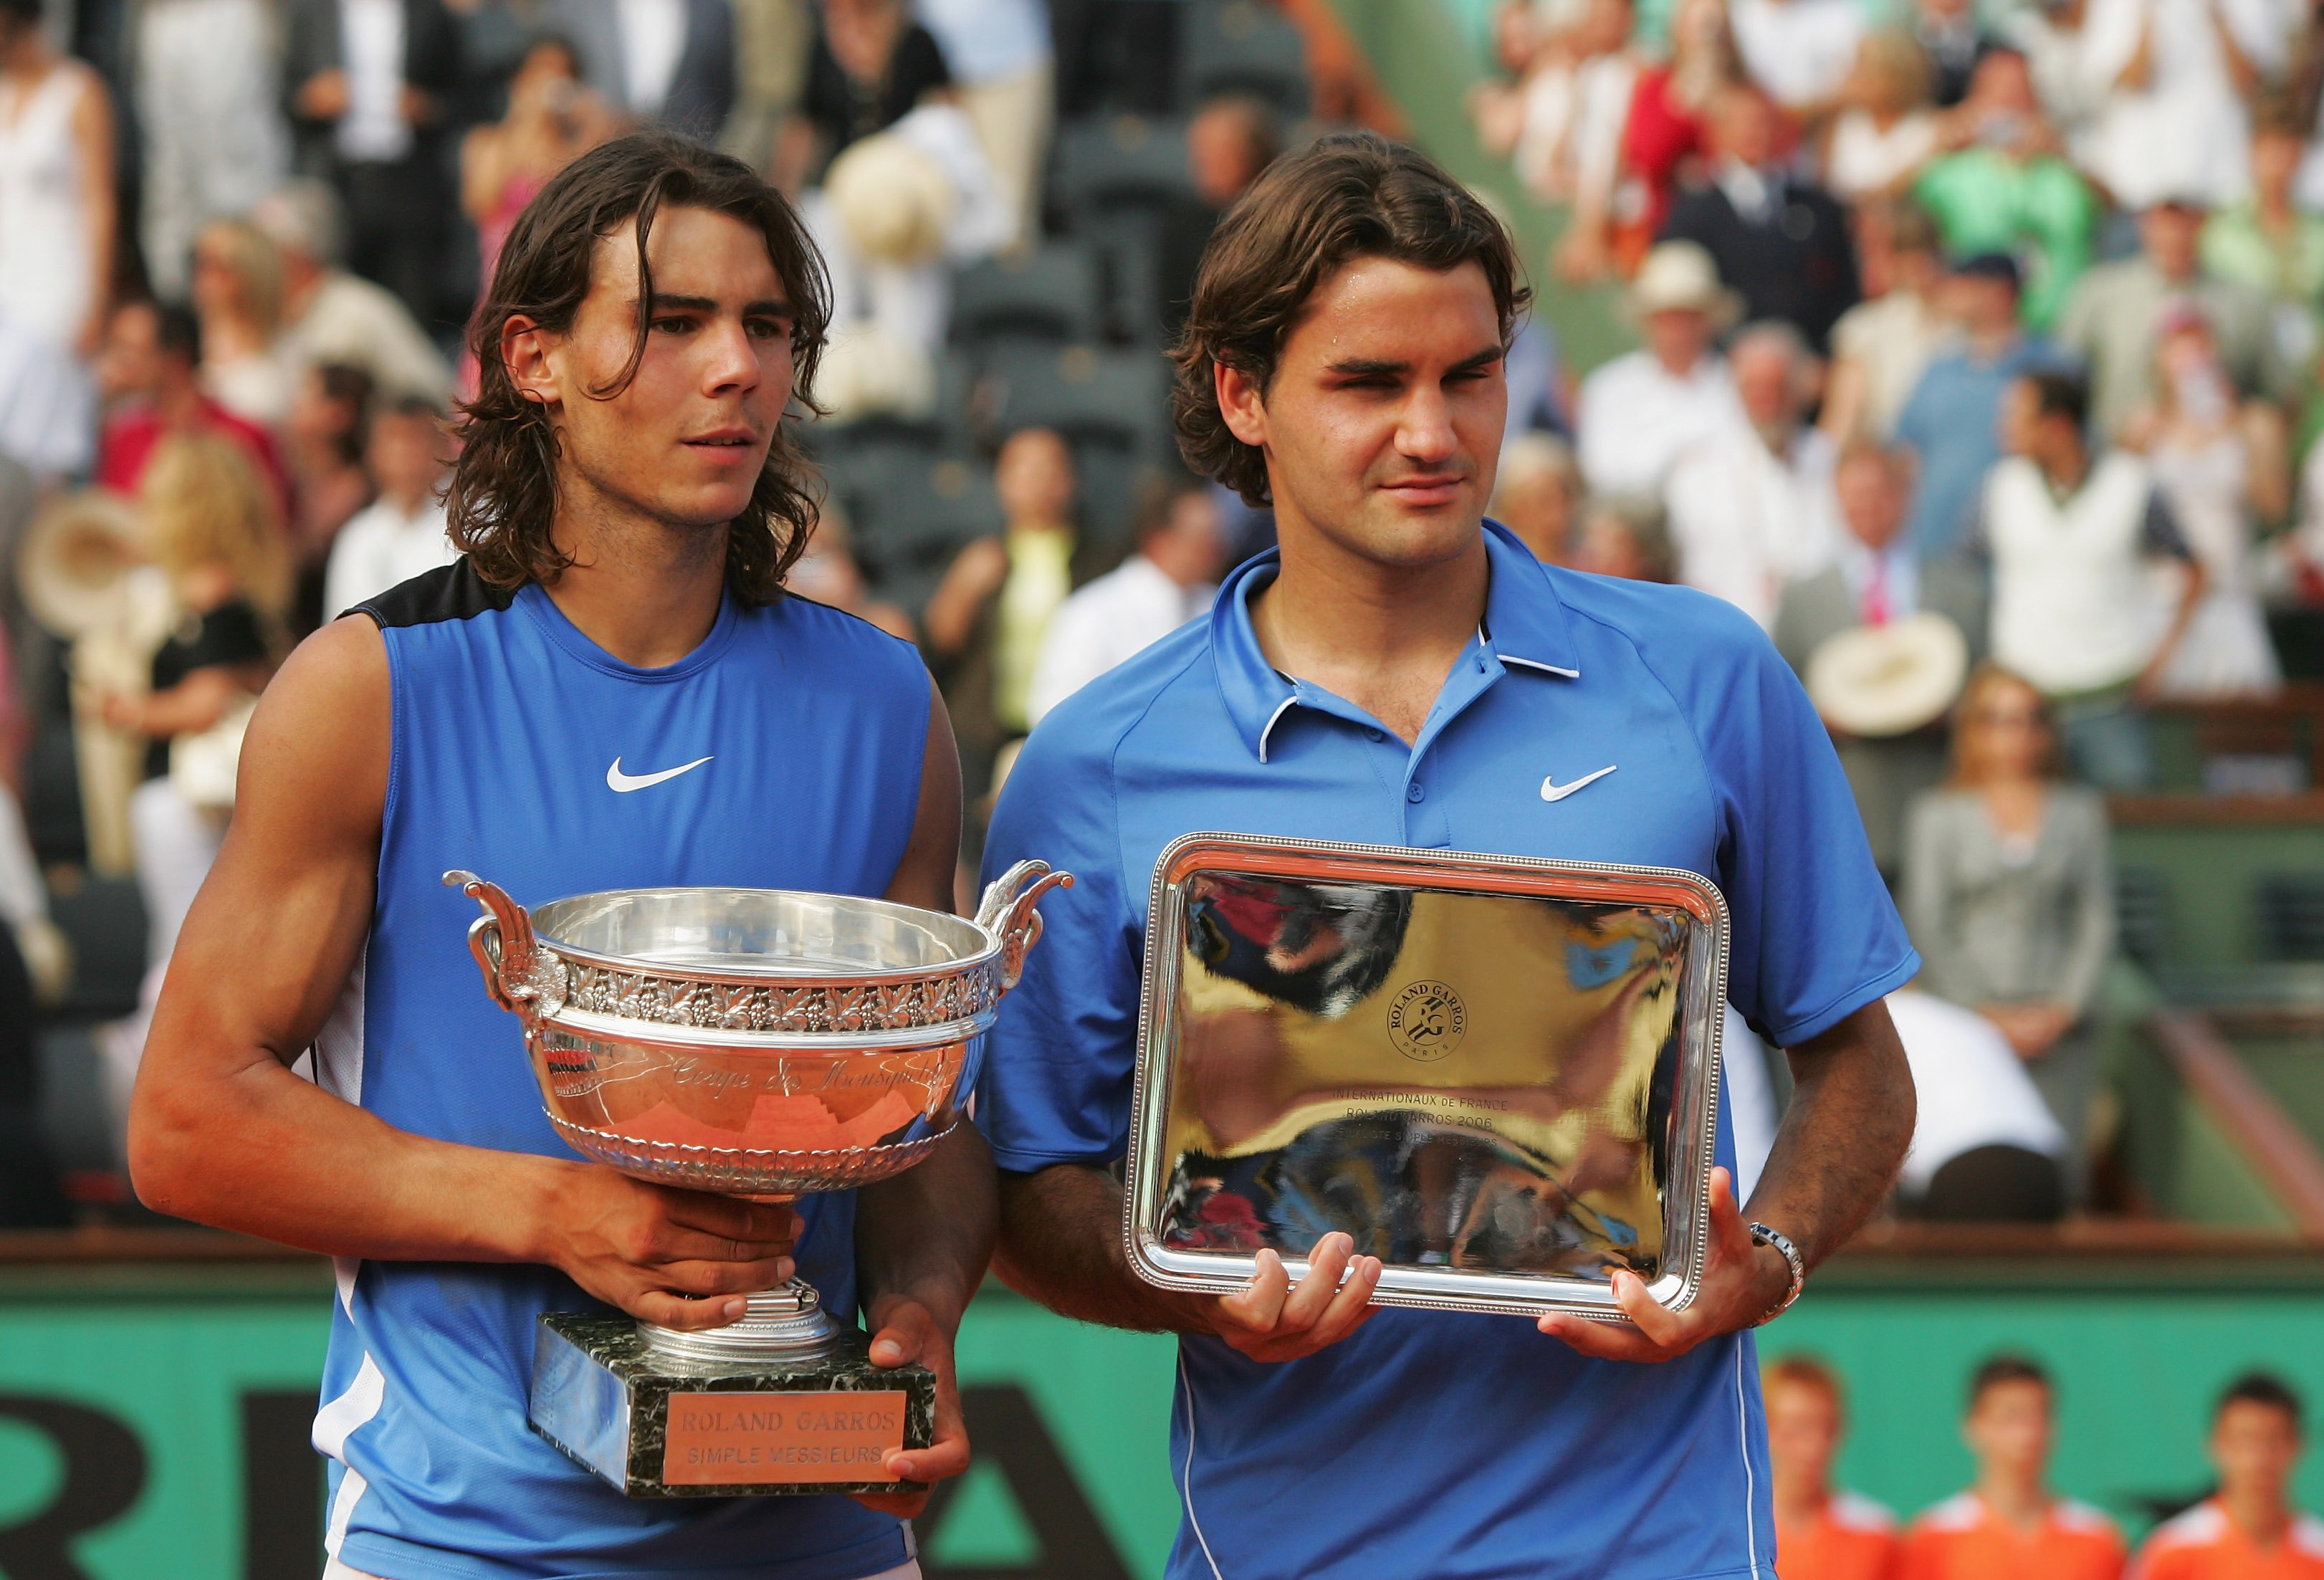 PARIS - JUNE 11:  Rafael Nadal (L) of Spain looks on after defeating Roger Federer (R) of Switzerland during the Men's Singles Final on day fifteen of the French Open at Roland Garros on June 11, 2006 in Paris, France.  (Photo by Matthew Stockman/Getty Im